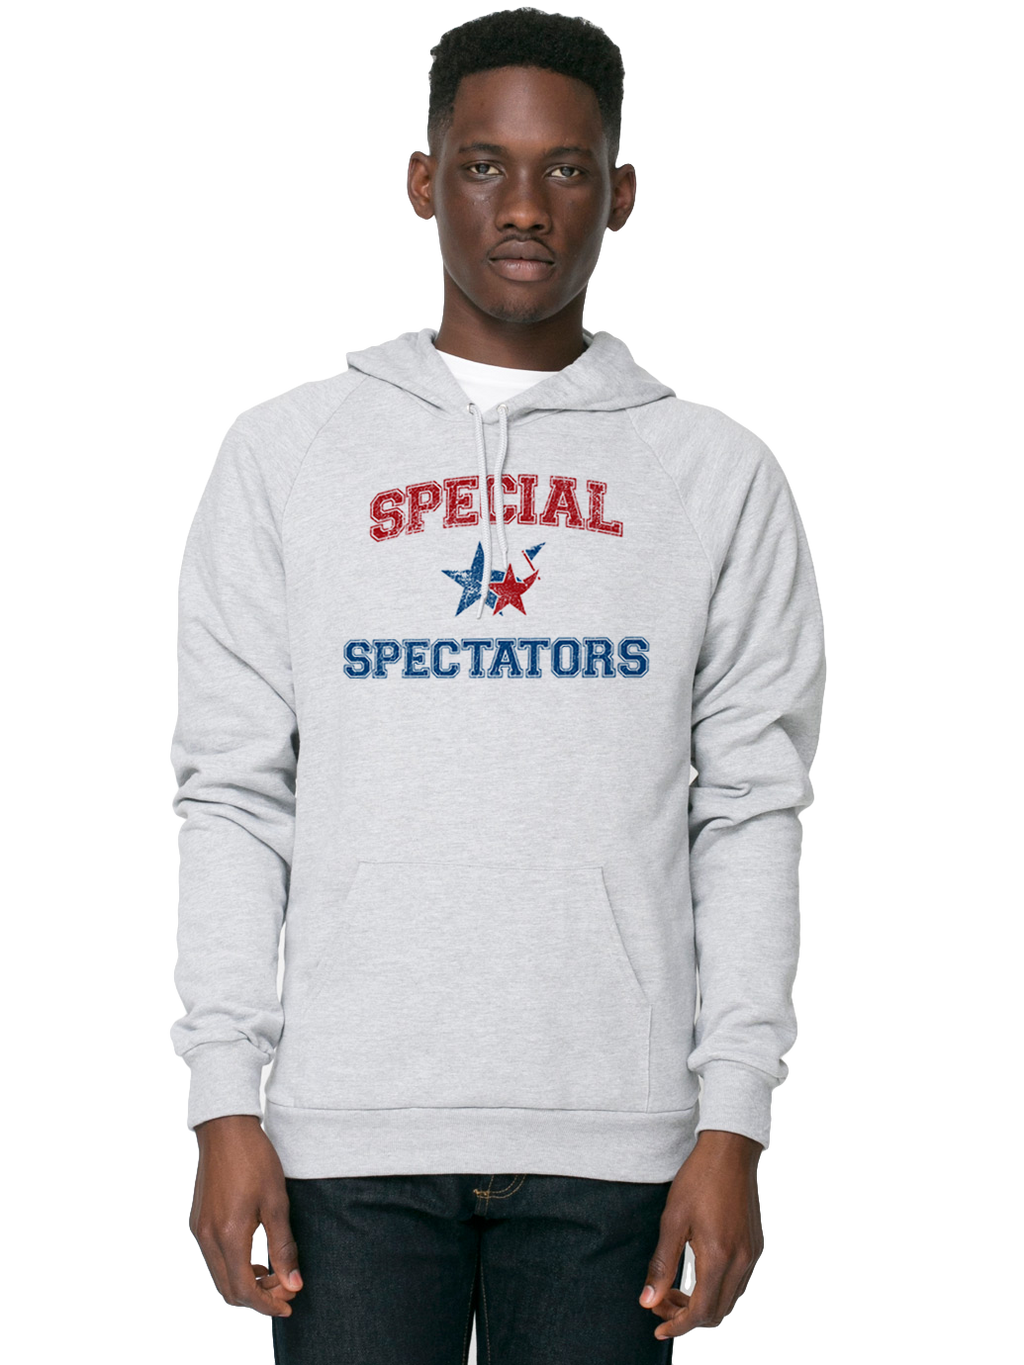 Special Spectators Unisex California Fleece Pullover Hoodie